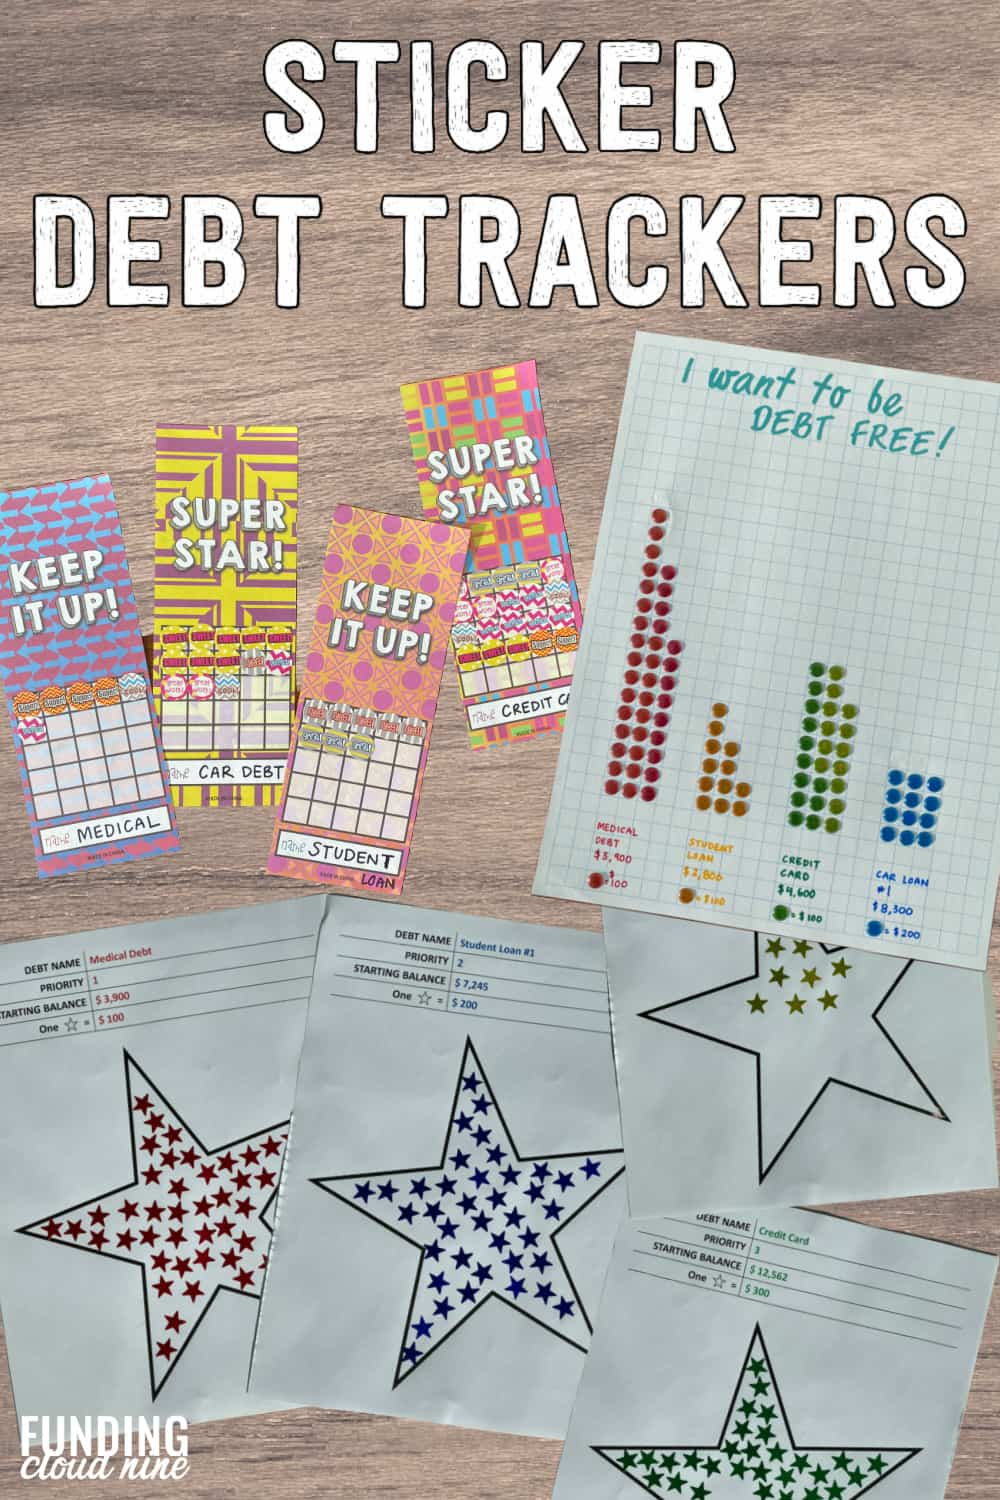 Pay off your debt fast and stay motivated by creating a sticker debt tracker